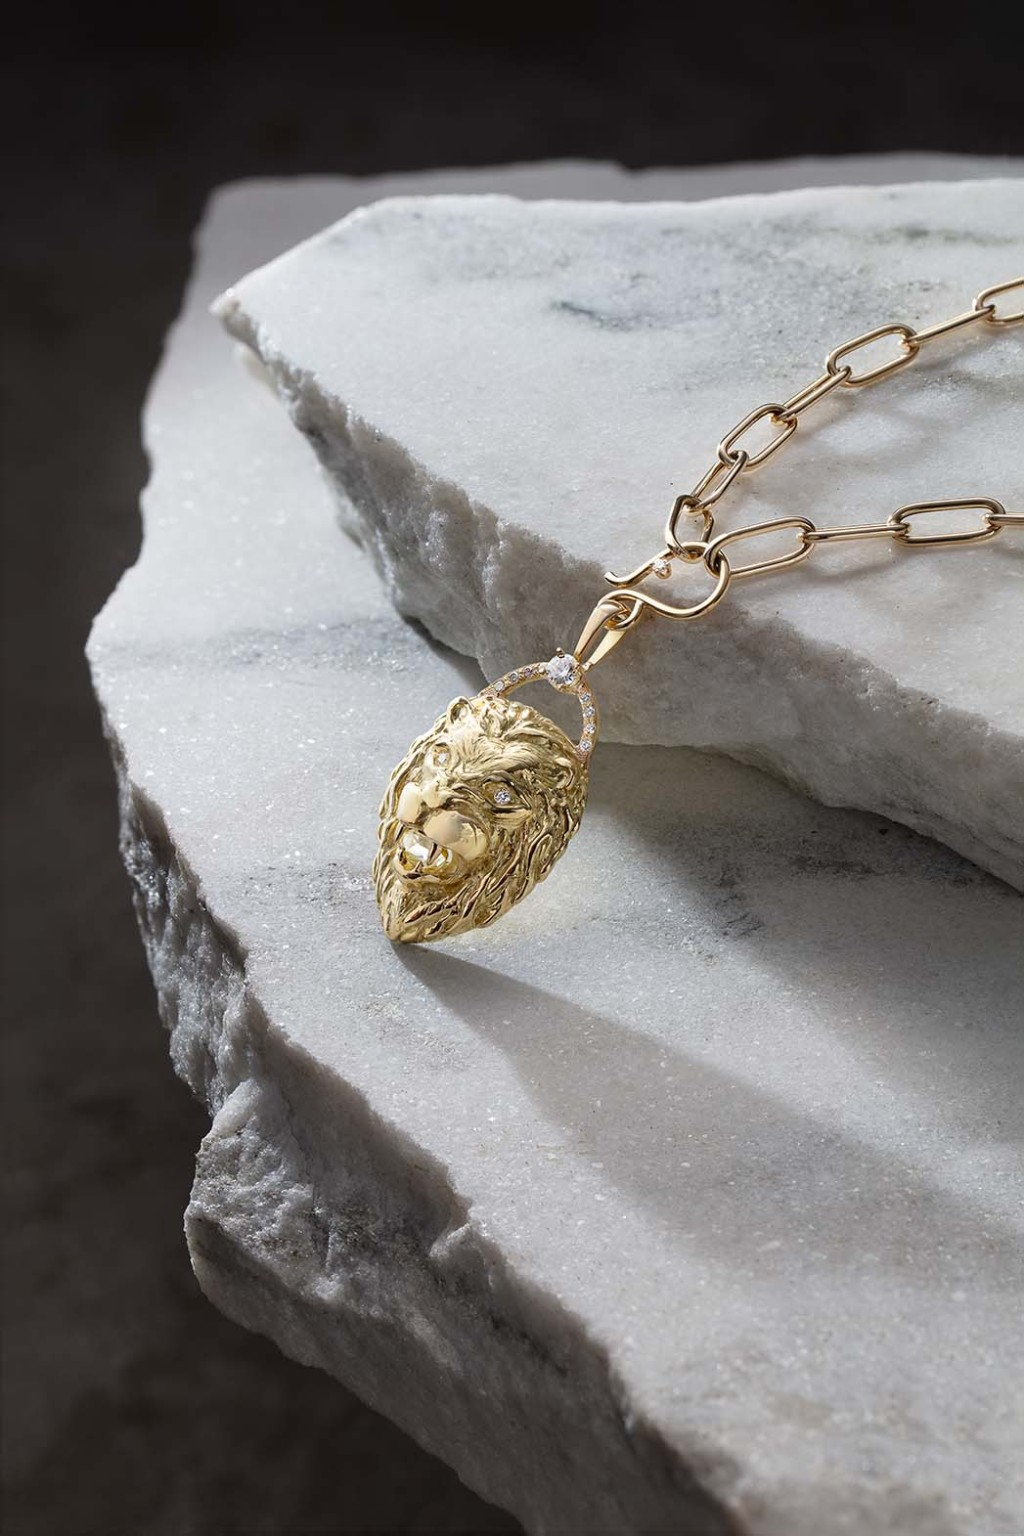 Lion's head pendant necklace by jewelry designer Zoë Chicco for the ReSet Collective.